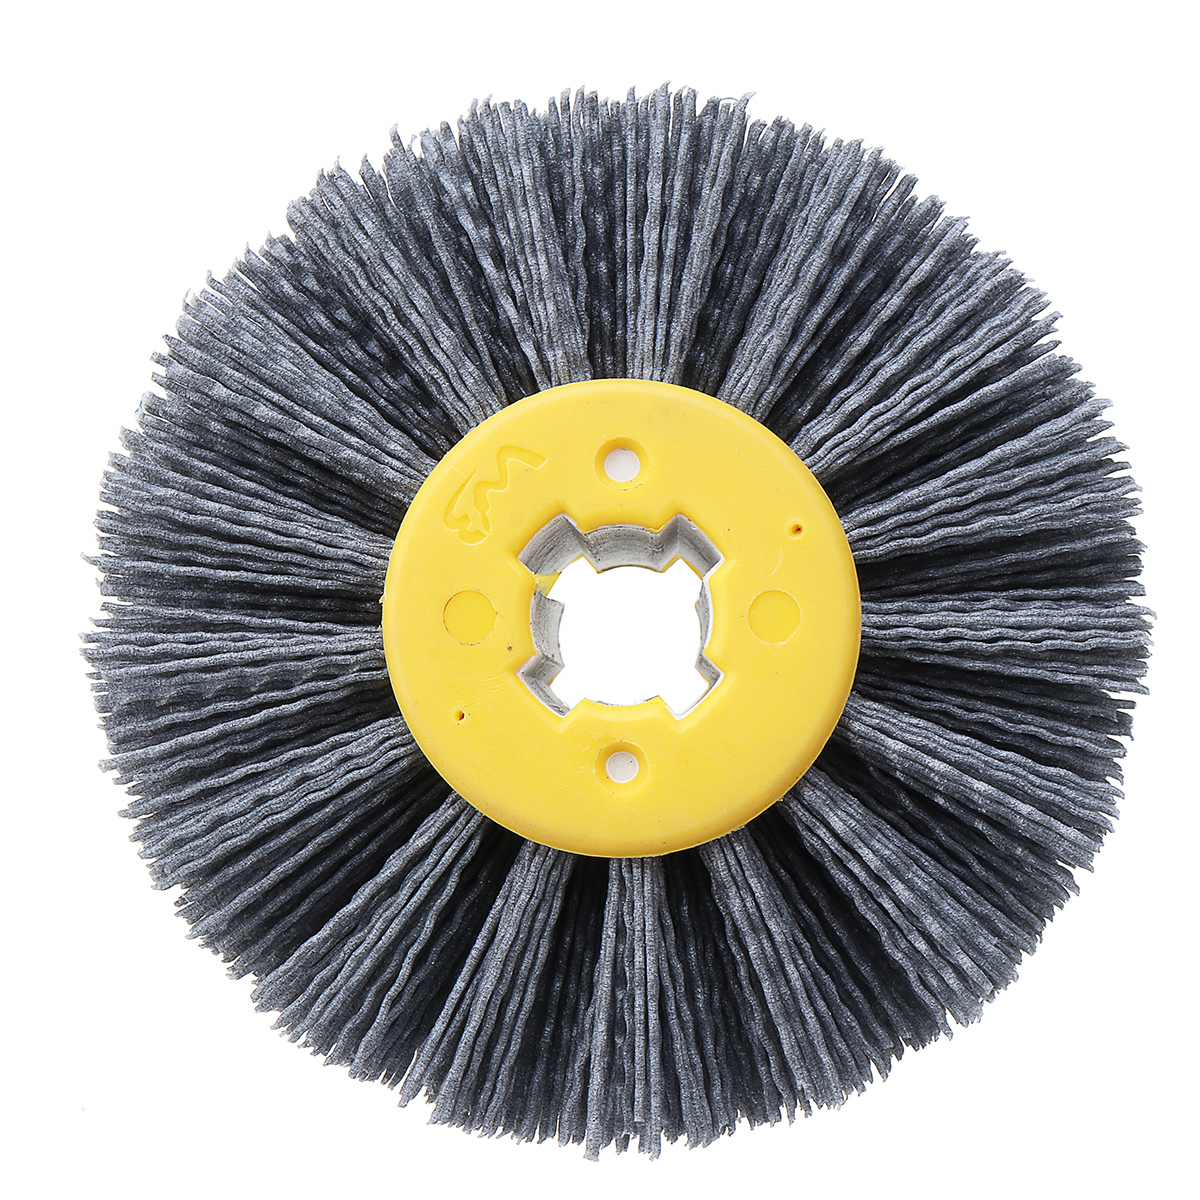 180 Grit 100120mm Abrasives Wire Brush Wheel for 9741 Wheel Sander Furniture Polishing Grinding Buffing Wheel Woodworking Tools